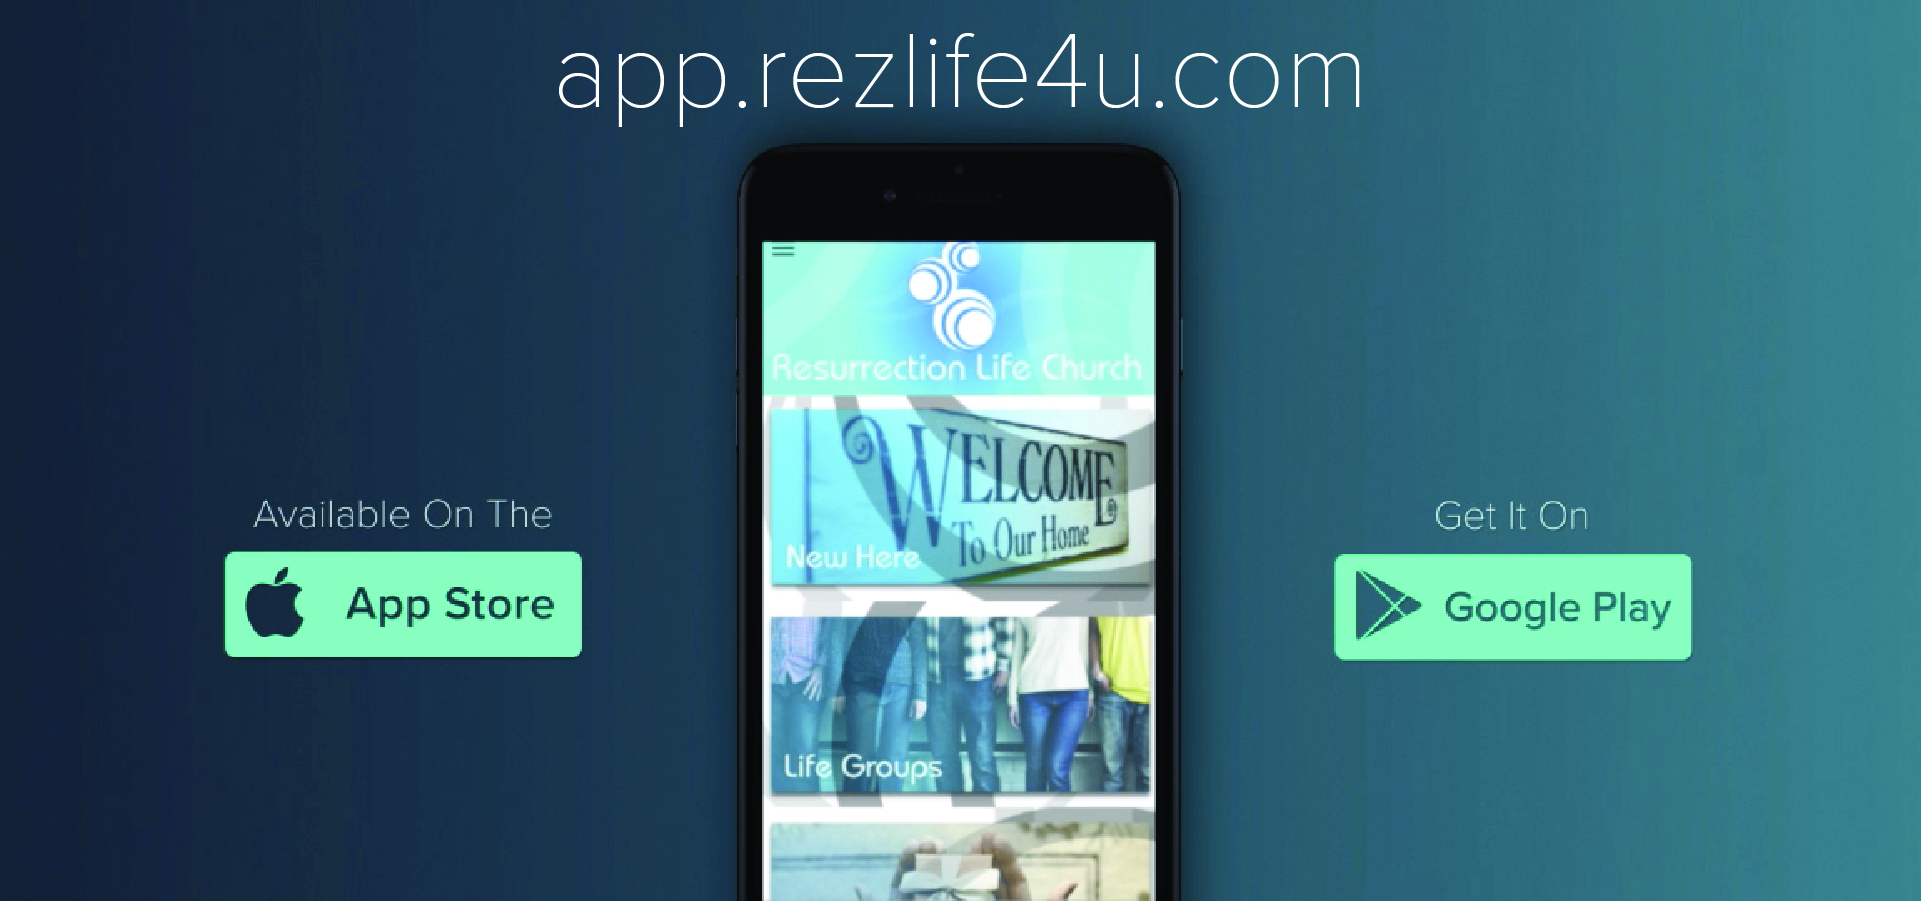 Rezlife Church App